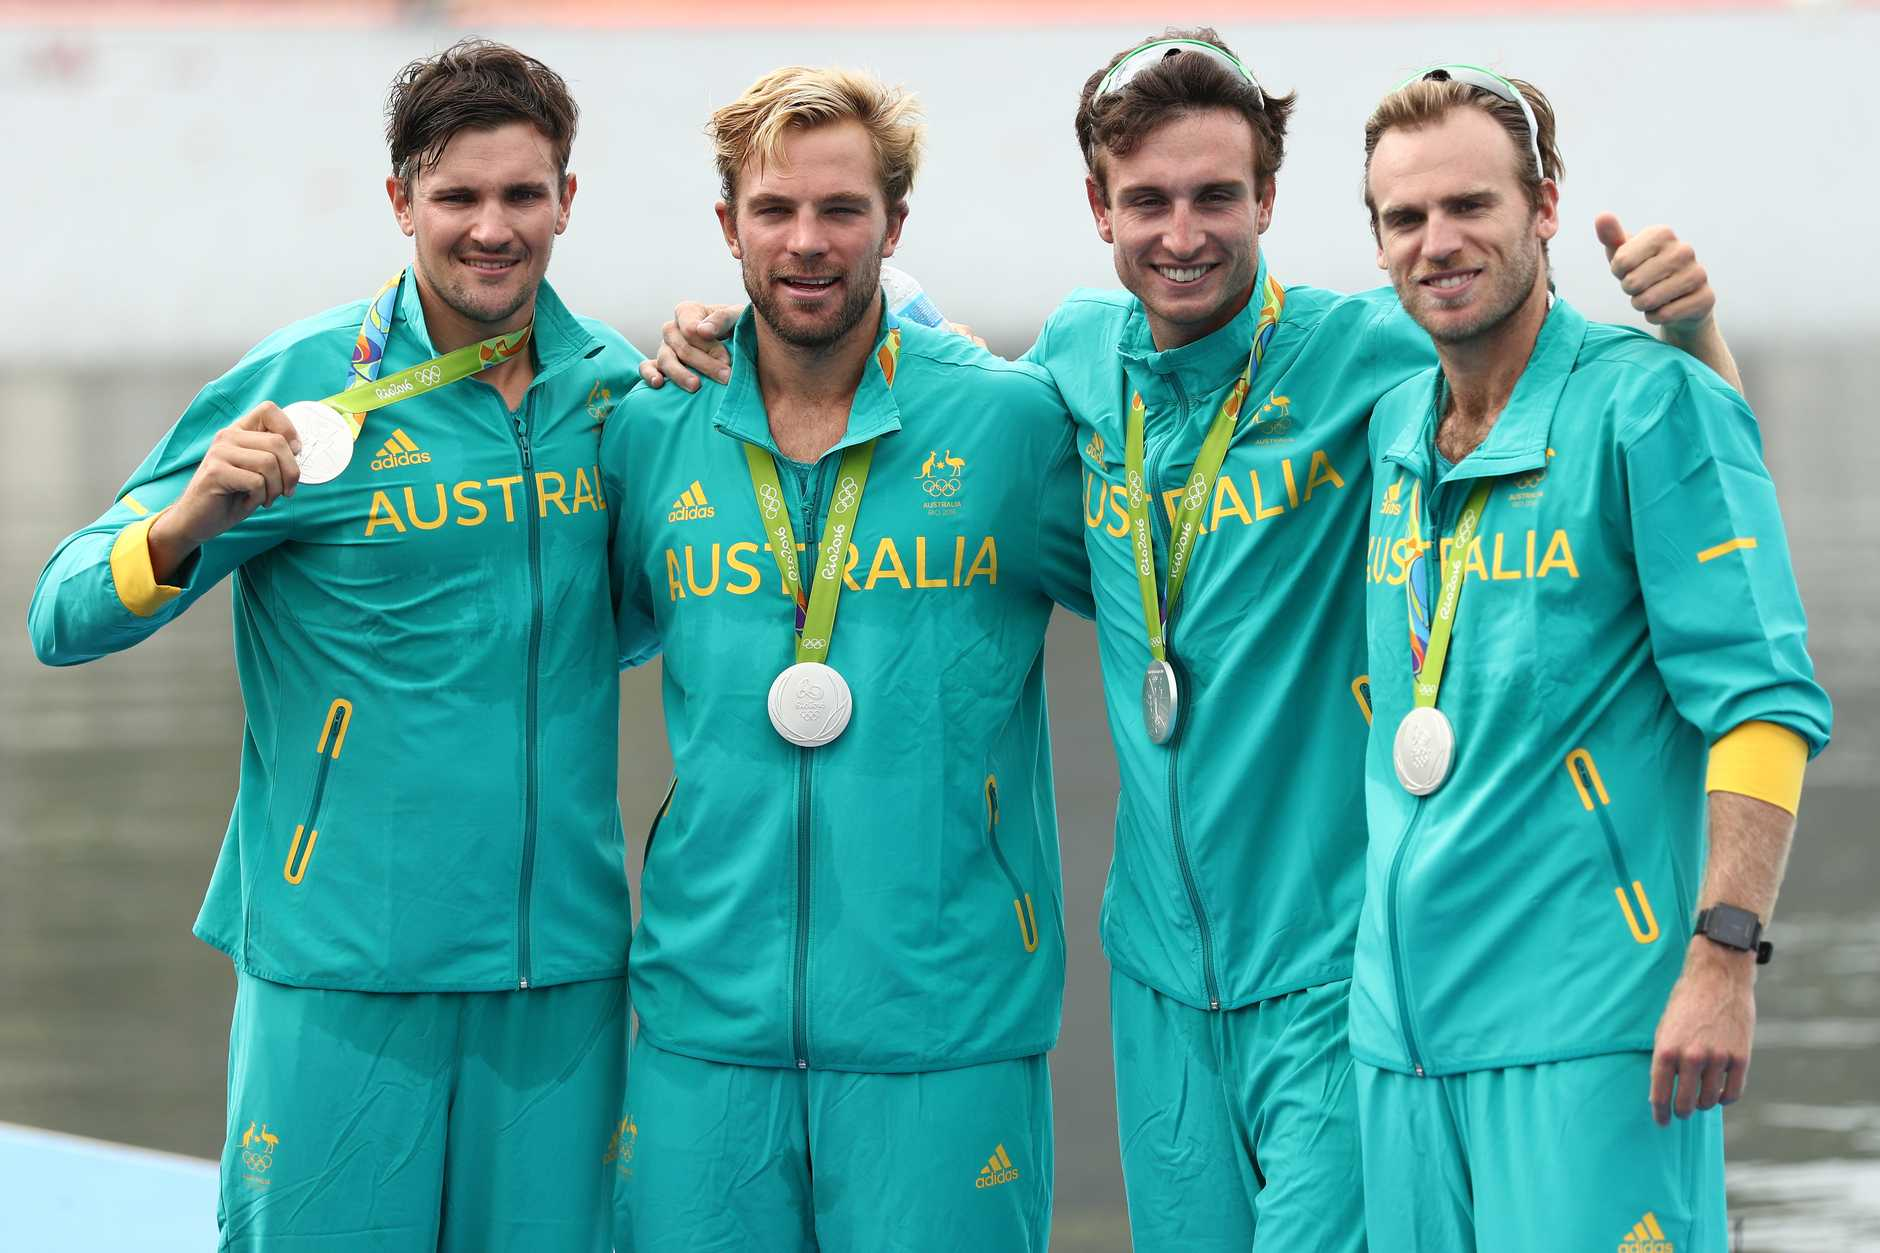 RIO DE JANEIRO, BRAZIL - AUGUST 12: Silver medalists William Lockwood, Joshua Dunkley-Smith, Joshua Booth and Alexander Hill of Australia pose for photographs on the podium at the medal ceremony for the Men's Four on Day 7 of the Rio 2016 Olympic Games at Lagoa Stadium on August 12, 2016 in Rio de Janeiro, Brazil. (Photo by Patrick Smith/Getty Images)